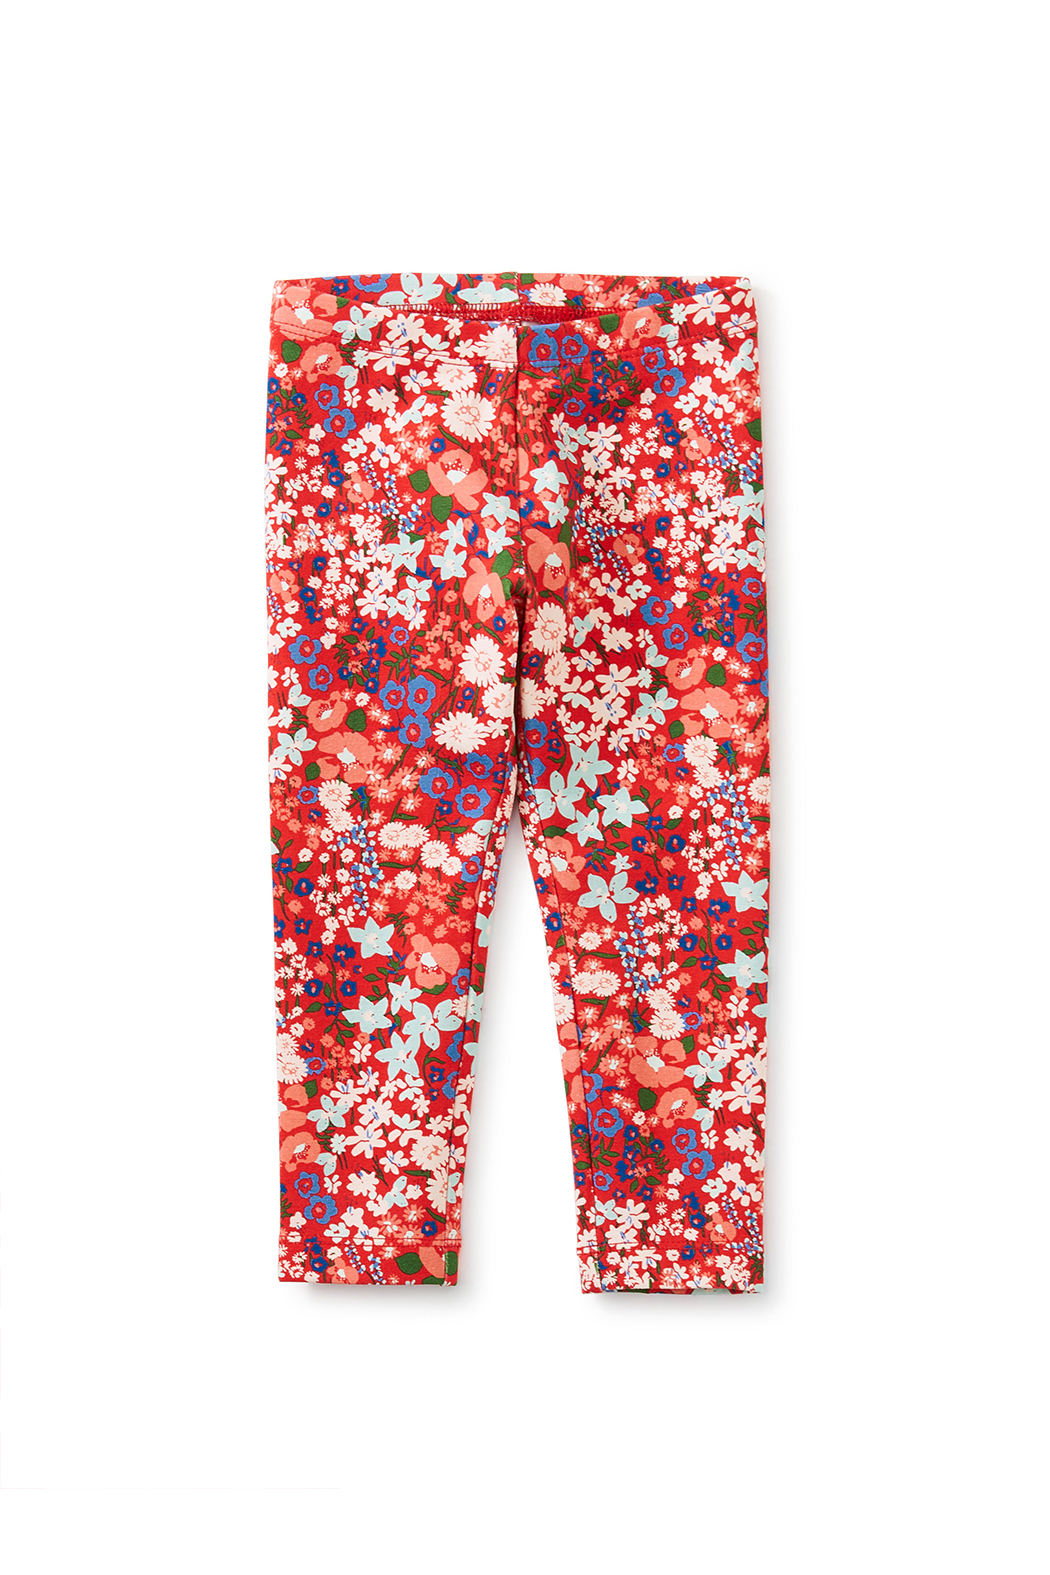 Tea Collection Printed Baby Leggings - Garden Sunset - Front Full Image